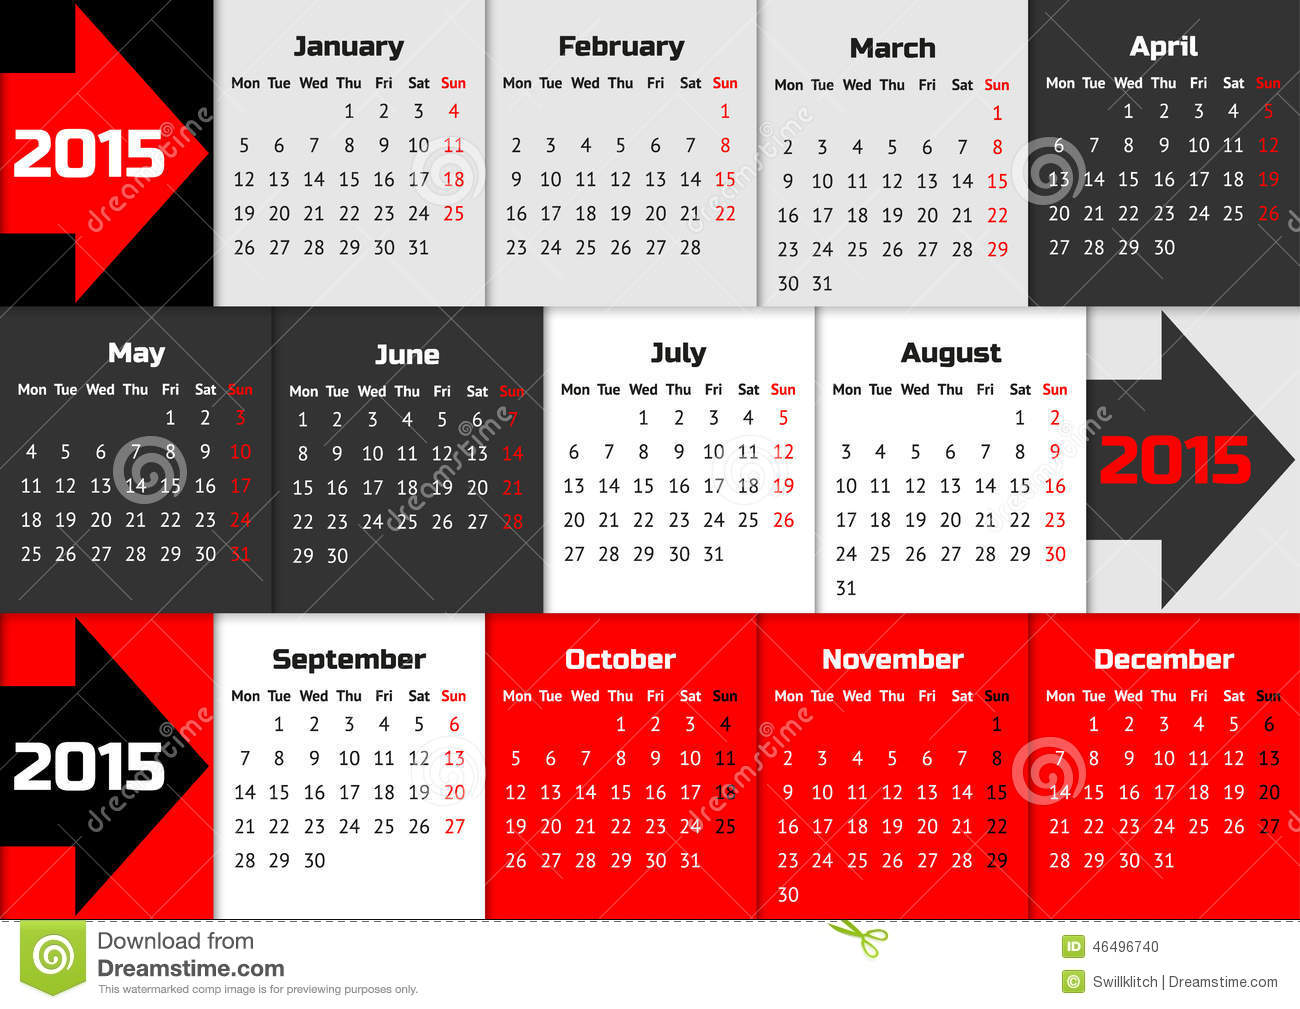 color coded calendar template - infographic calendar 2015 with arrows stock vector image